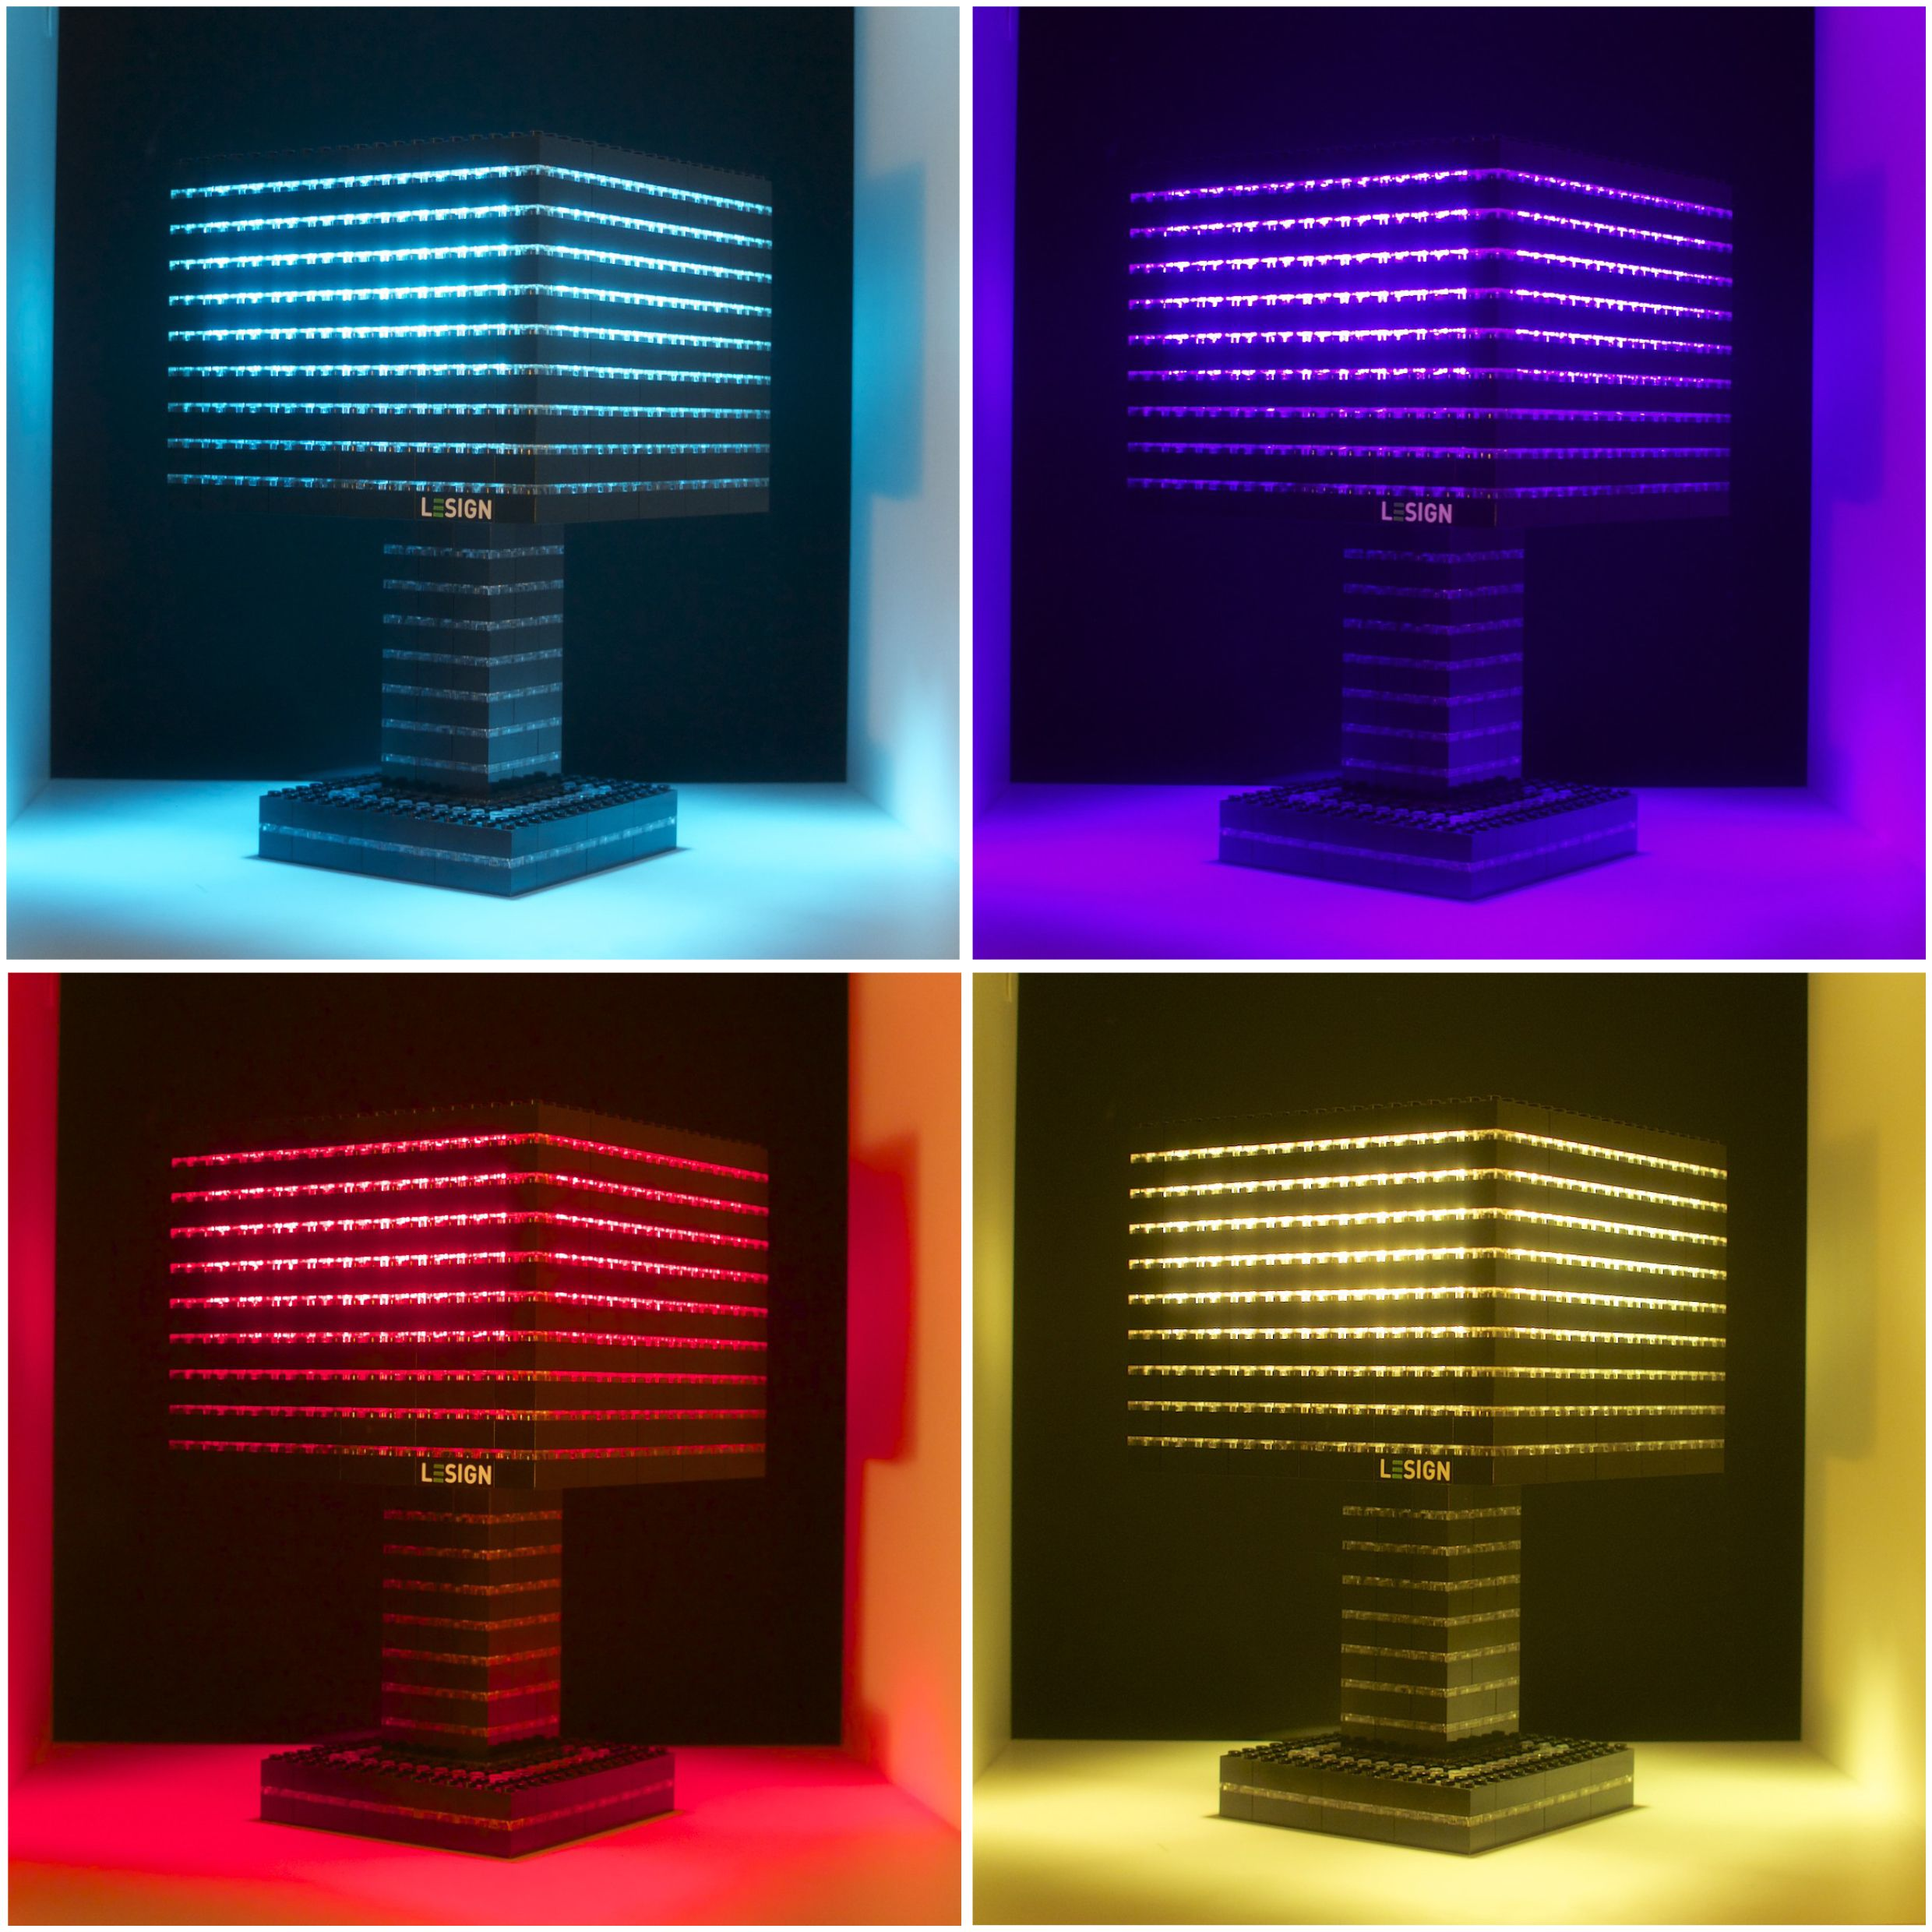 lichtstimmung nach wahl led gl hbirne mit 15 verschiedenen farben auf knopfdruck lego lampe by. Black Bedroom Furniture Sets. Home Design Ideas